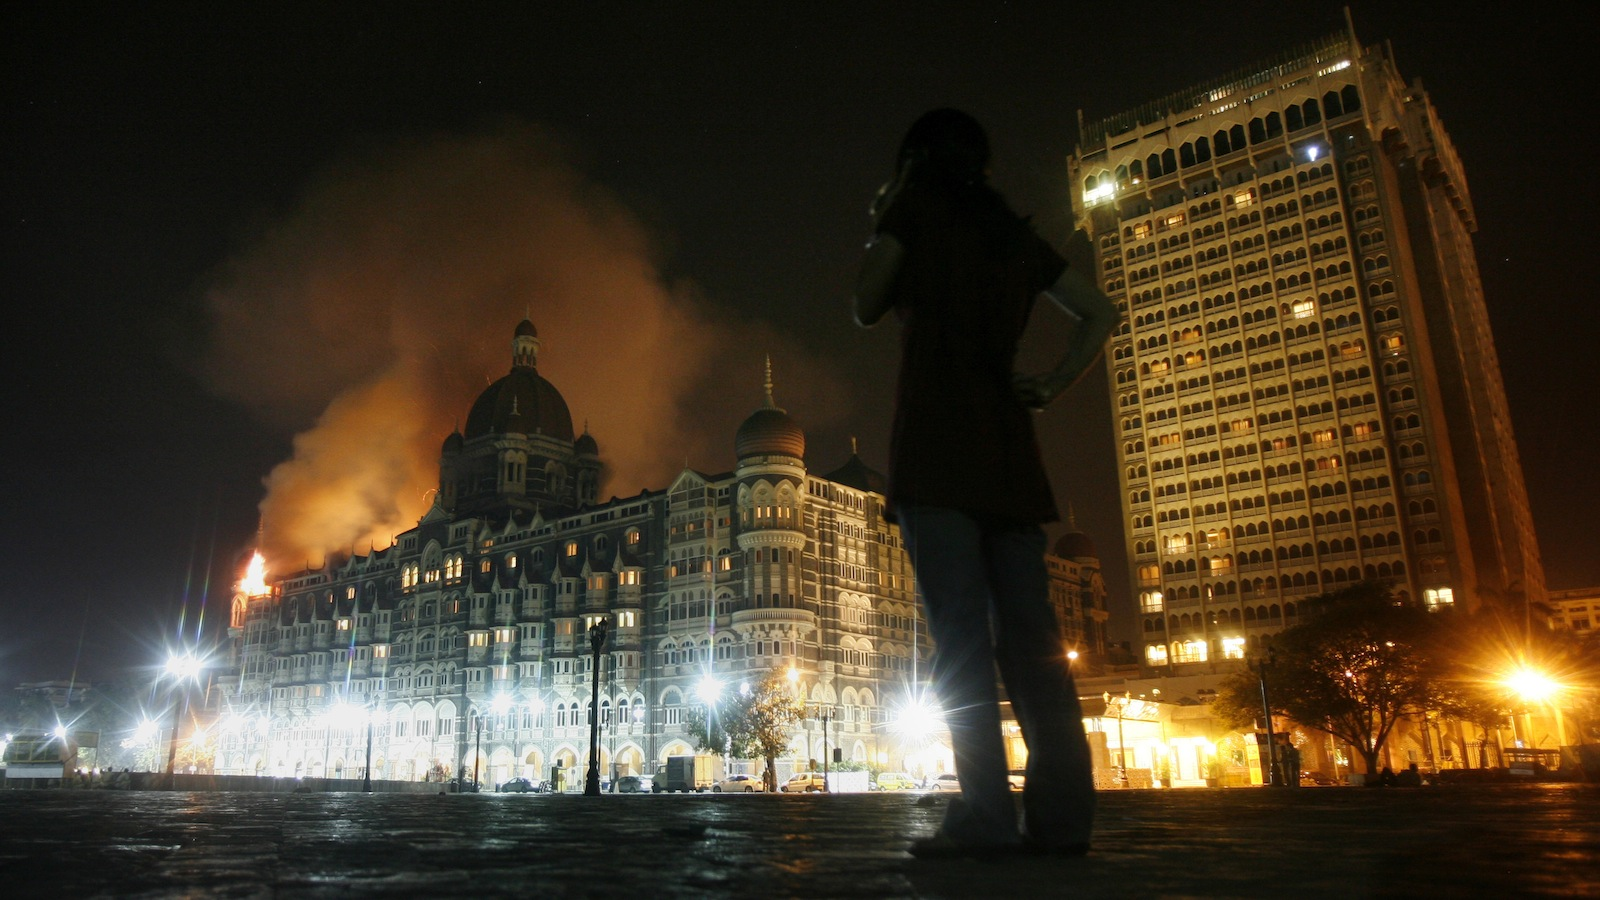 Six years after the Mumbai attacks, India remains a hotbed